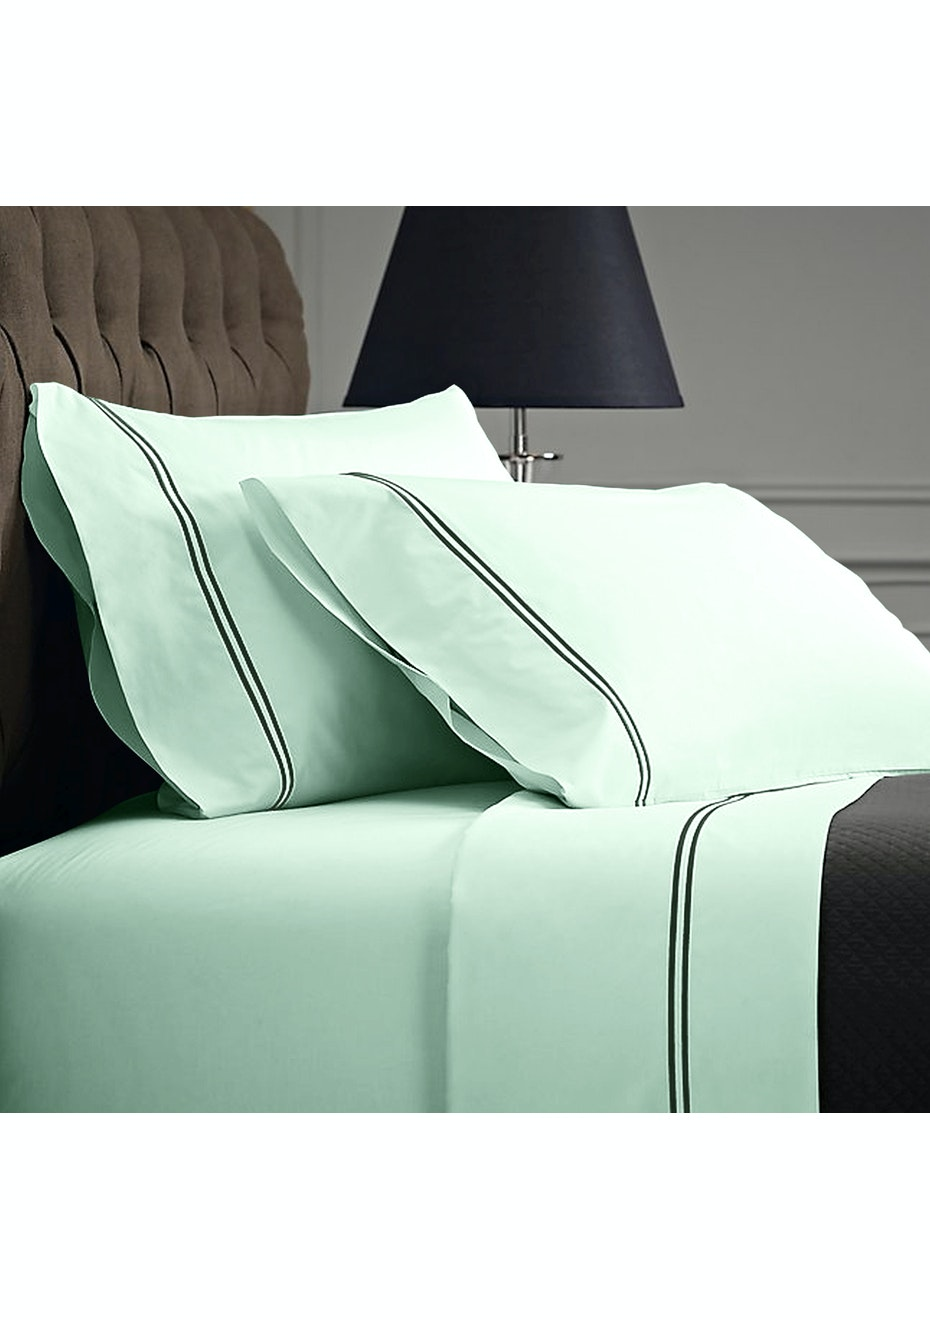 Style & Co 1000 Thread count Egyptian Cotton Hotel Collection Sorrento Sheet sets Queen Mist